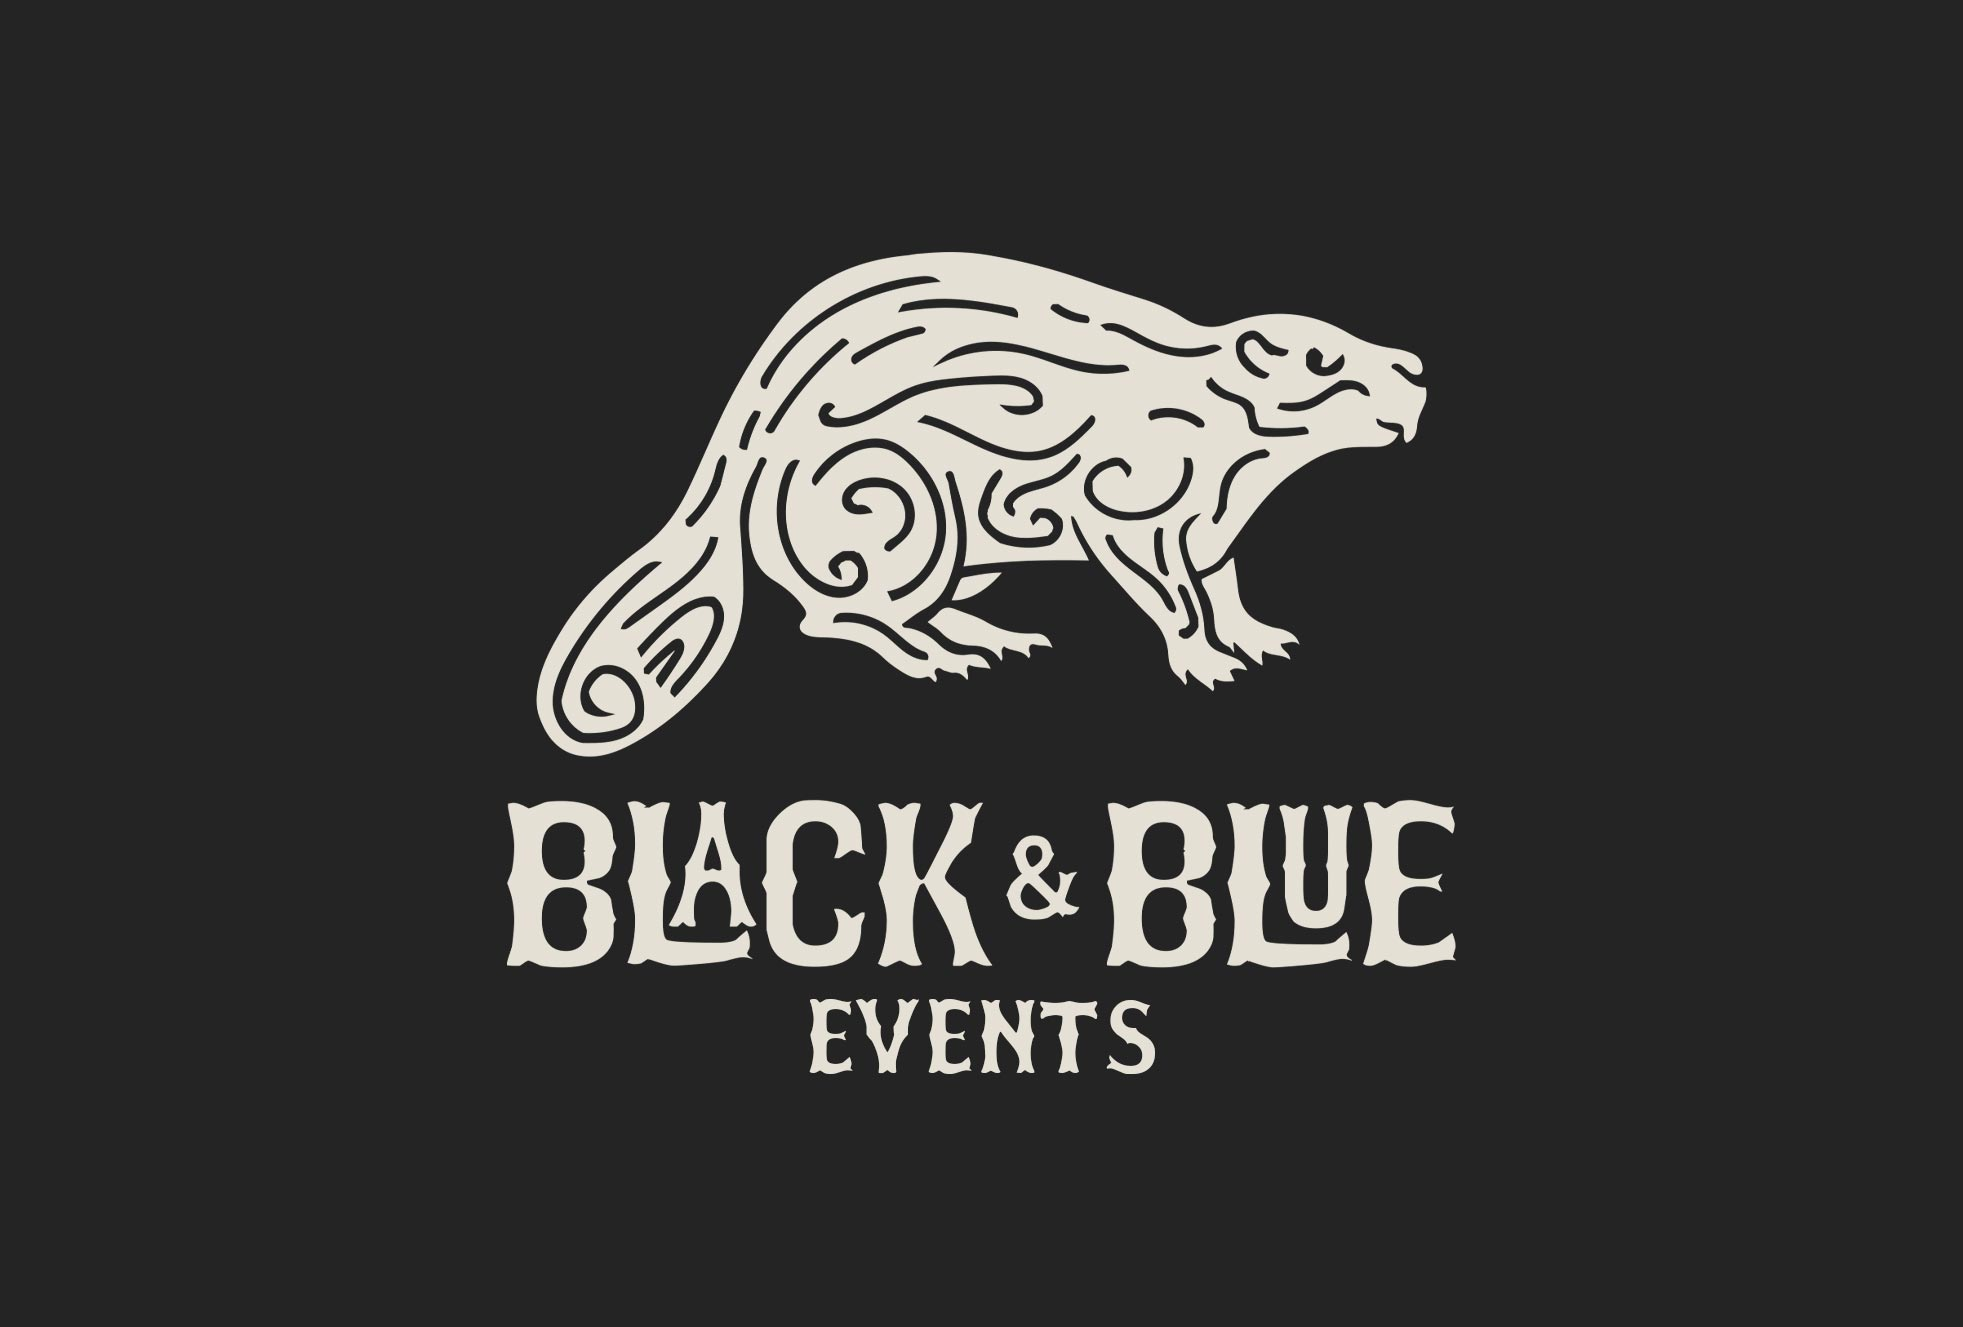 Black & Blue Events